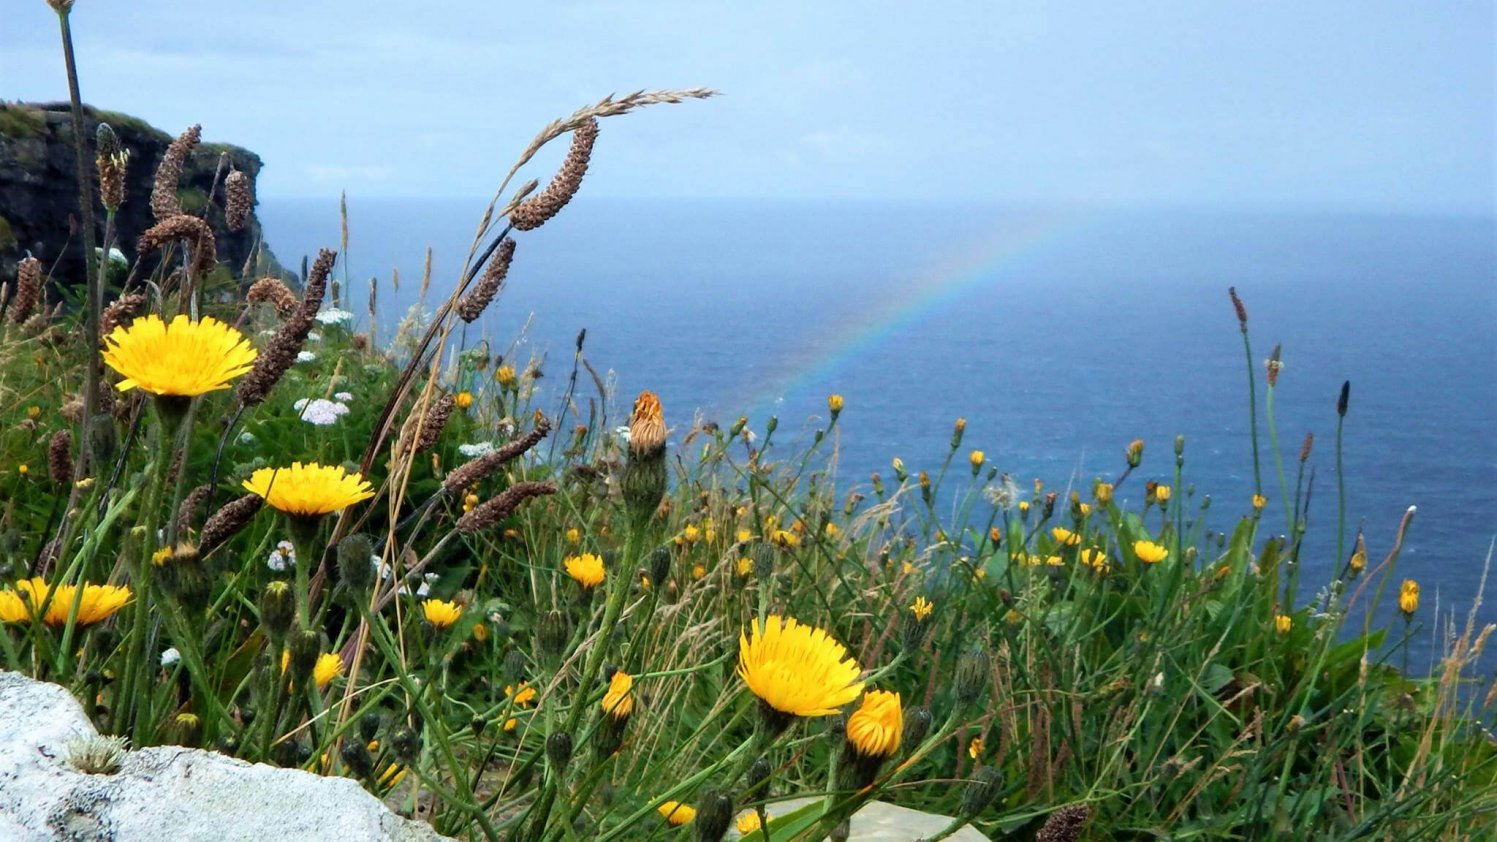 Rainbow hits the Cliffs of Moher in the background while yellow wildflowers grow amongst grass in the foreground, Ireland